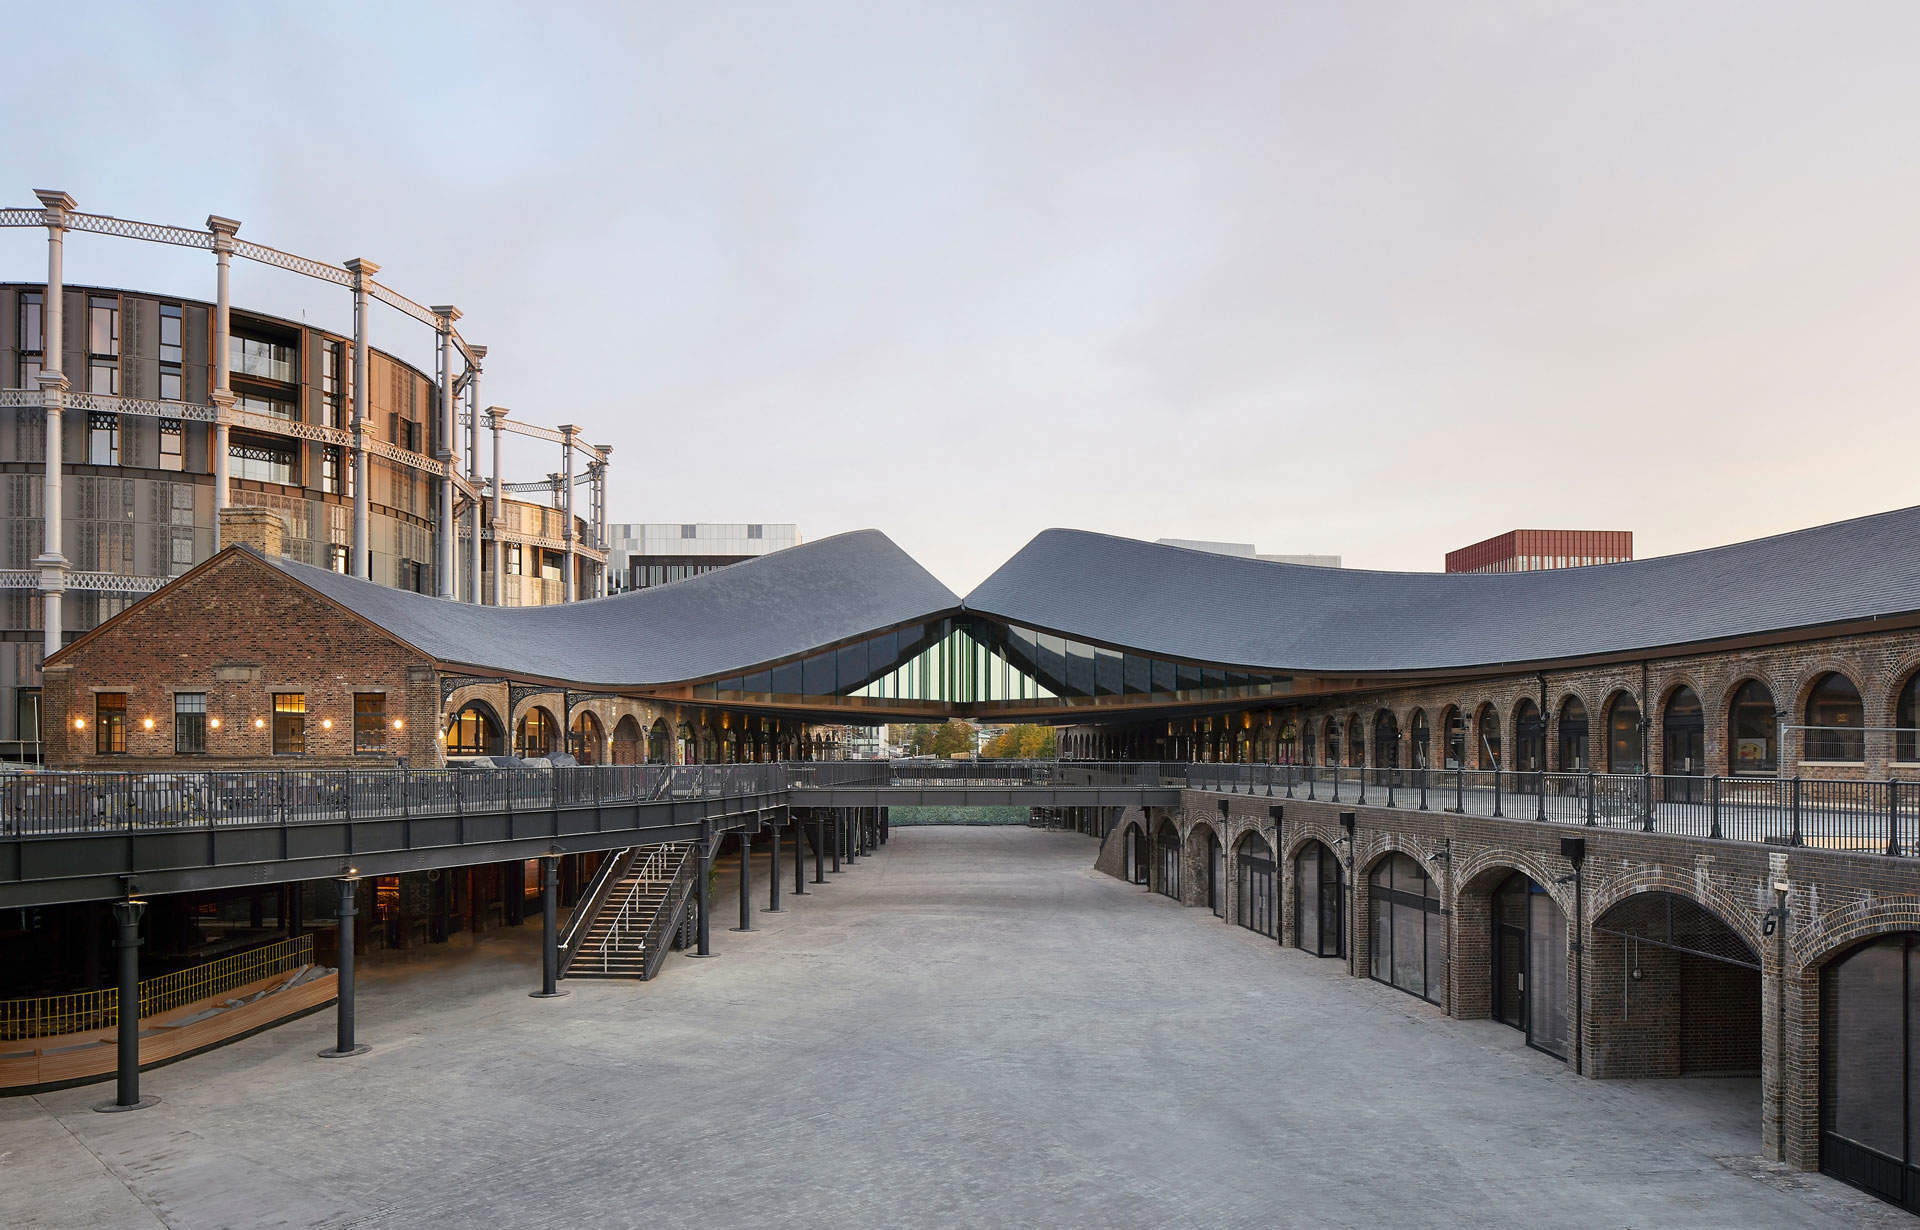 Coal Drops Yard: The experience-focused blueprint for new model retail